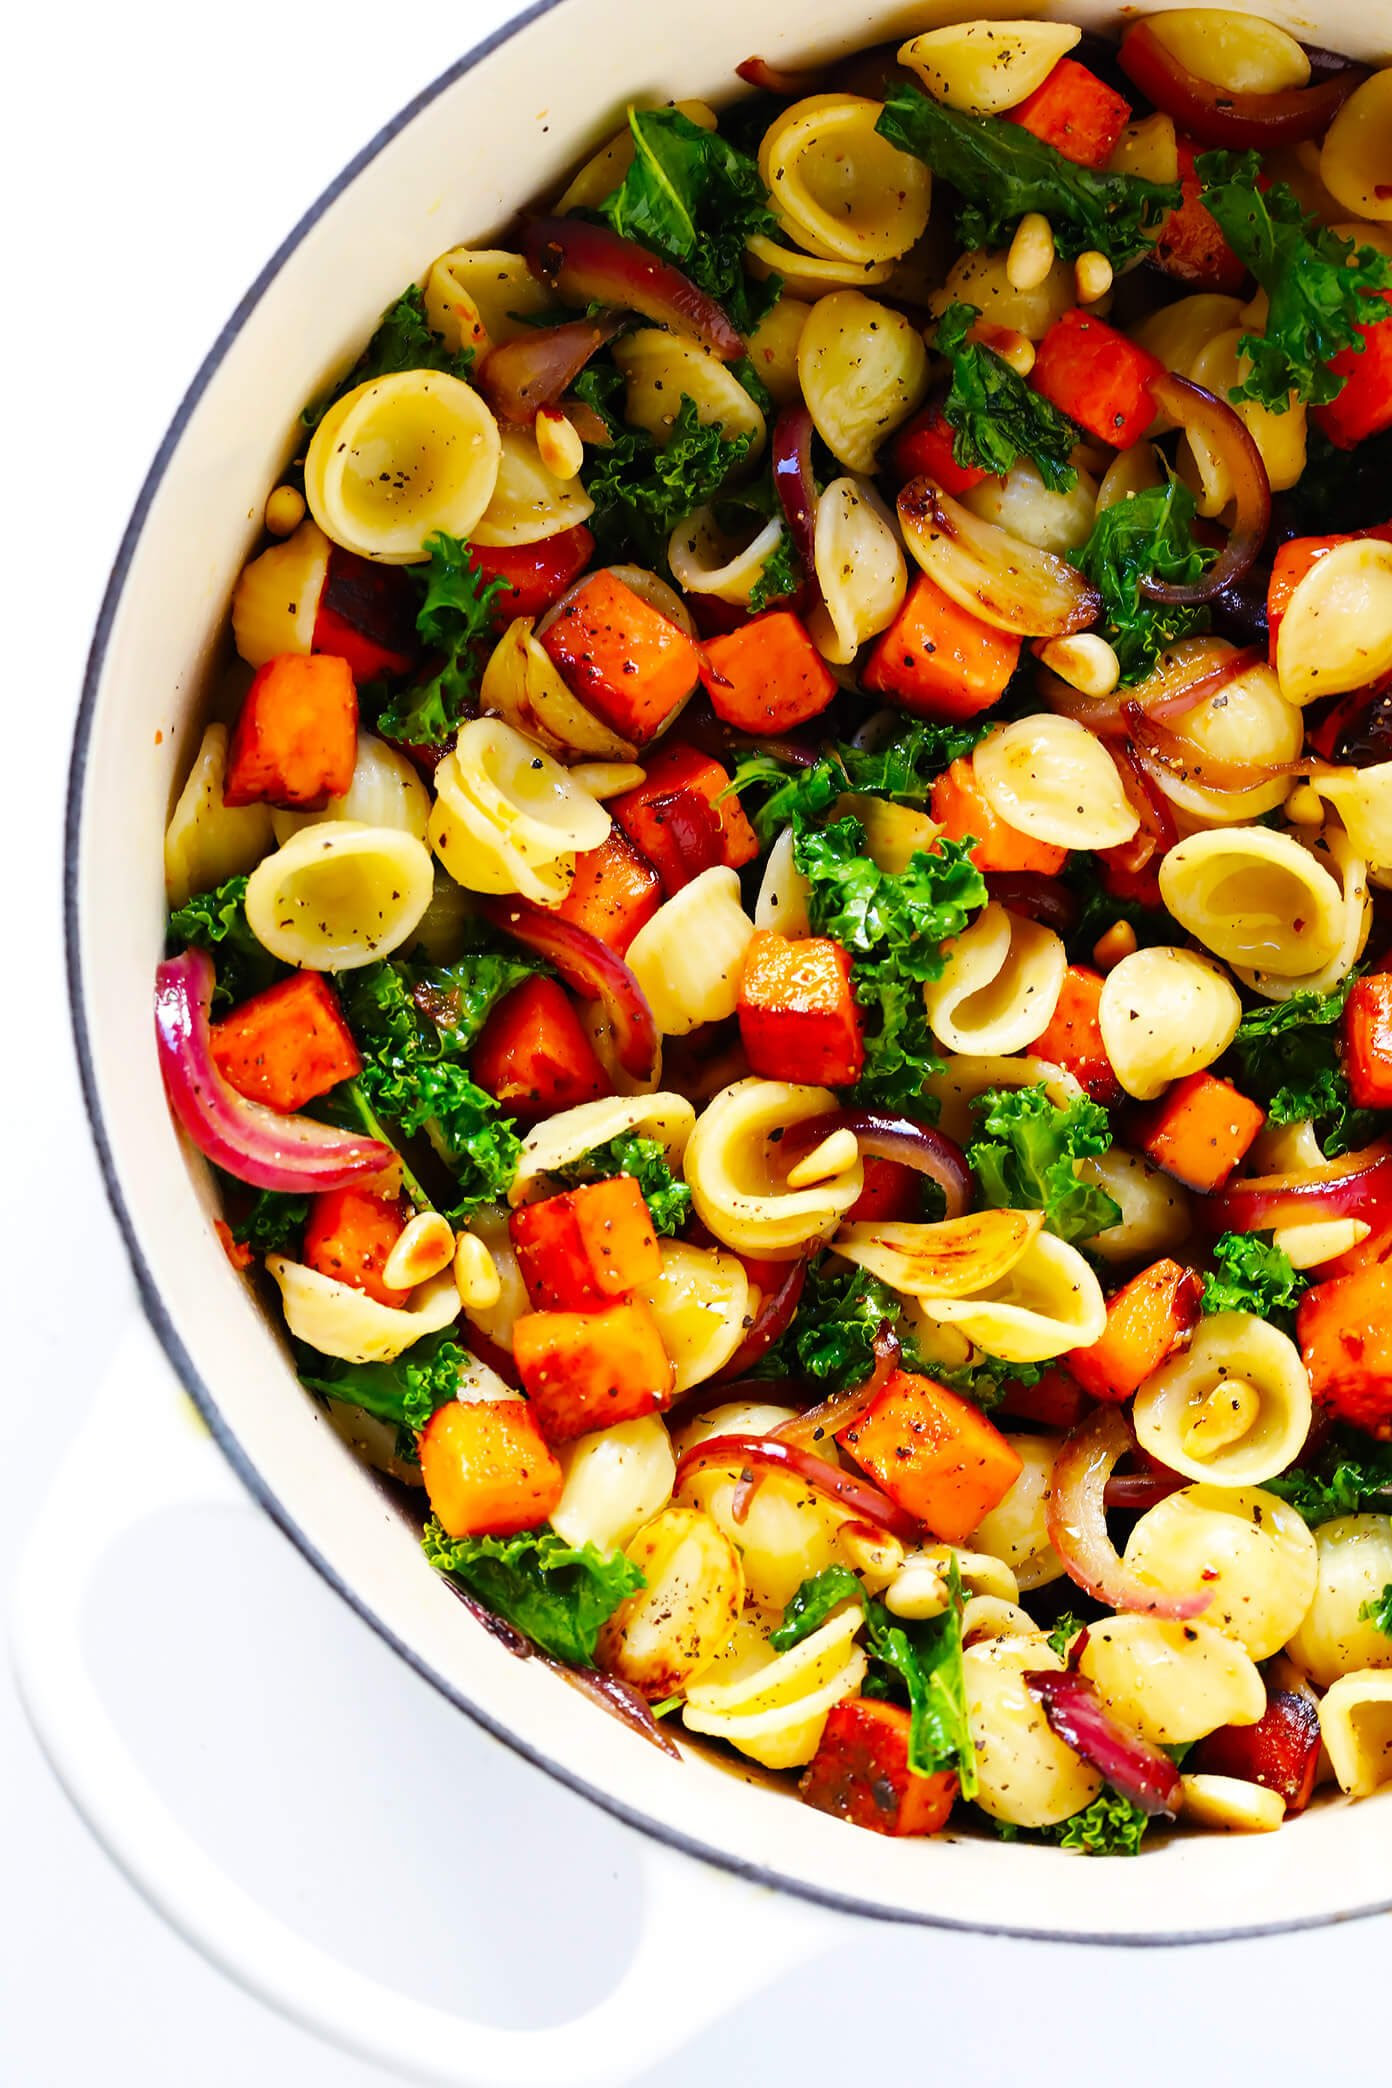 20 Vegetarian Dinner Recipes That Everyone Will Love Gimme Some Oven